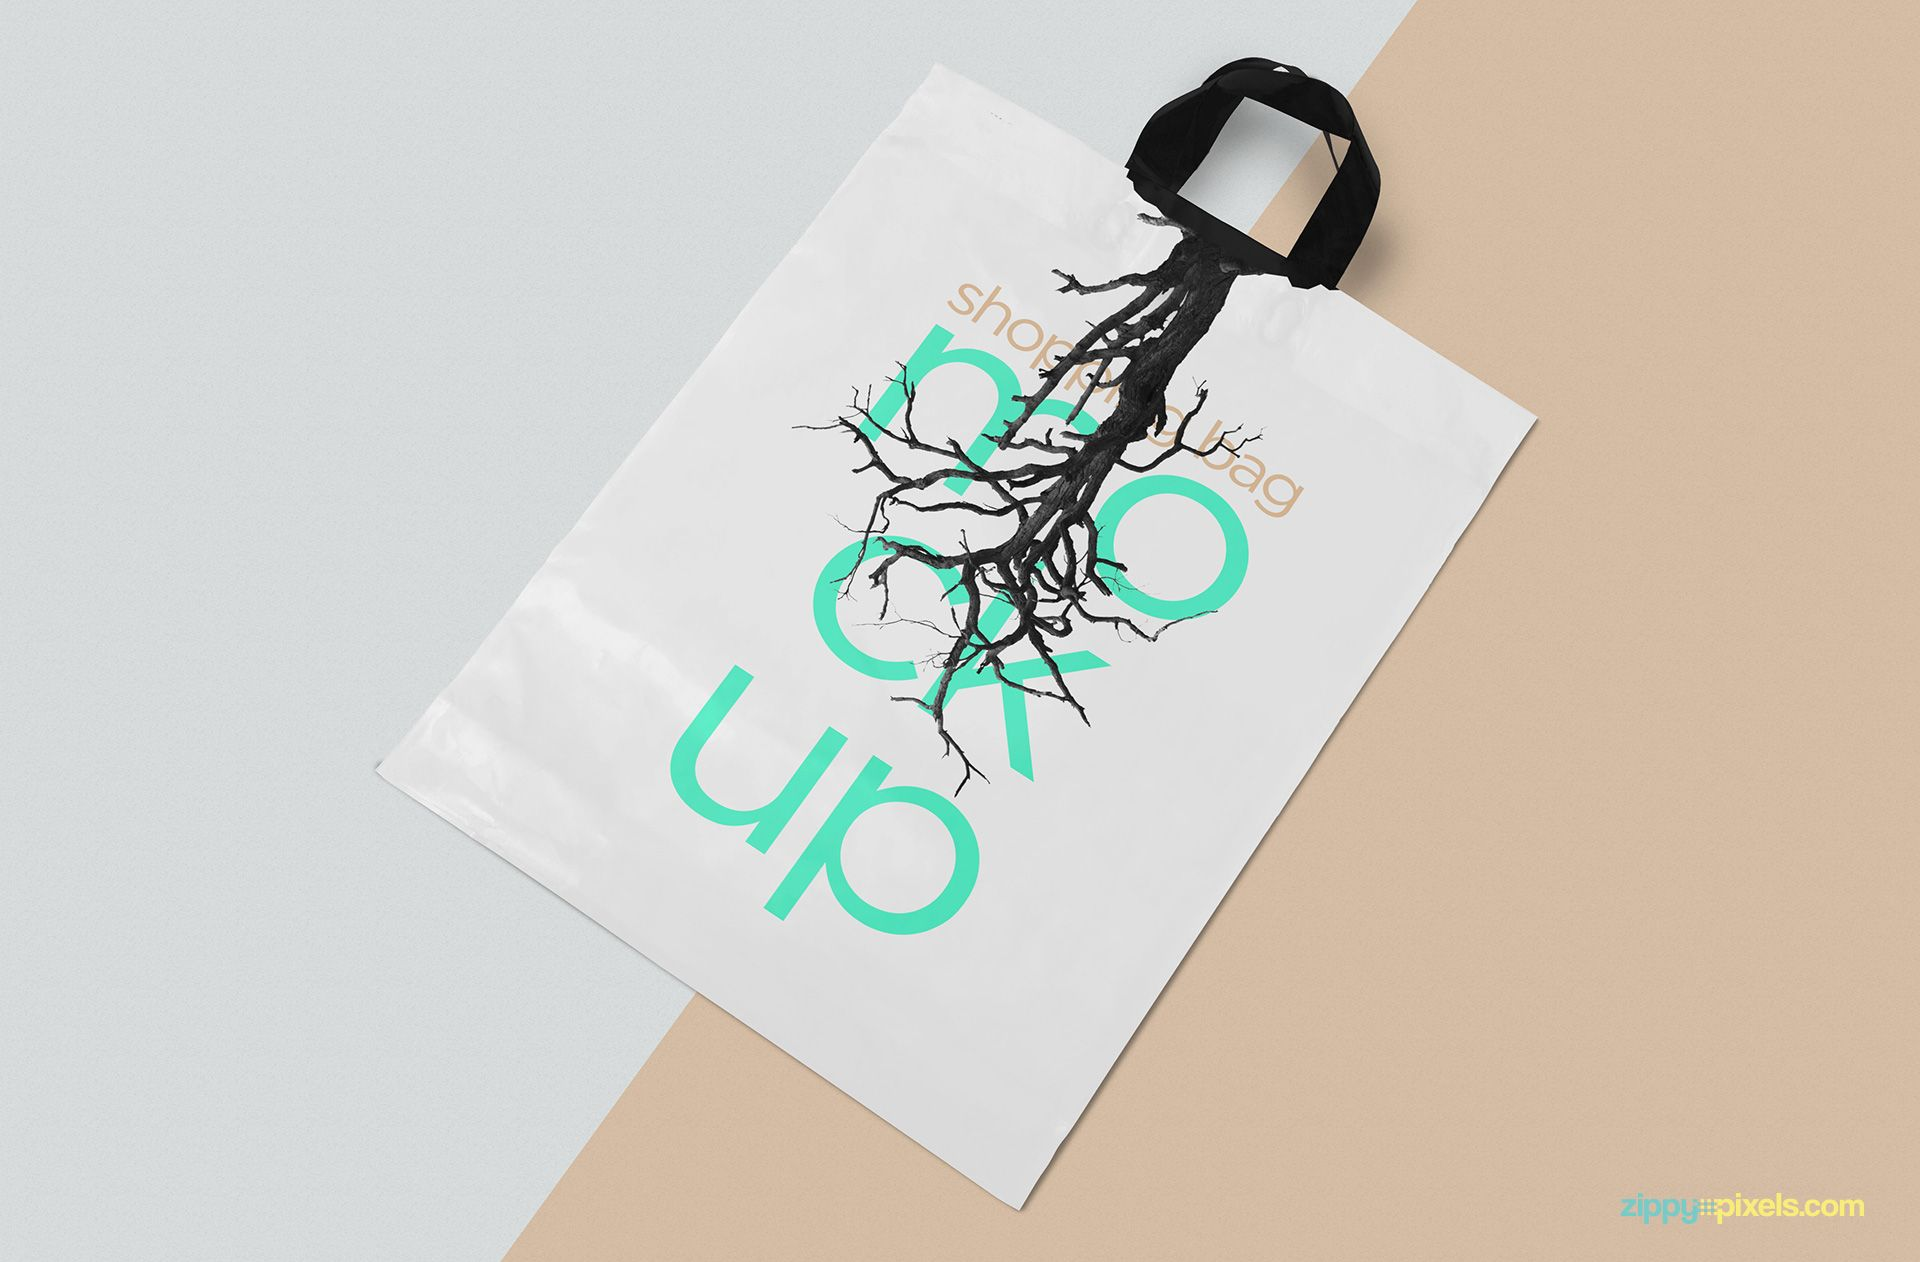 Download Polythene Shopping Bag Mockup Free Psd Zippypixels Bag Mockup Bags Mockup Free Psd